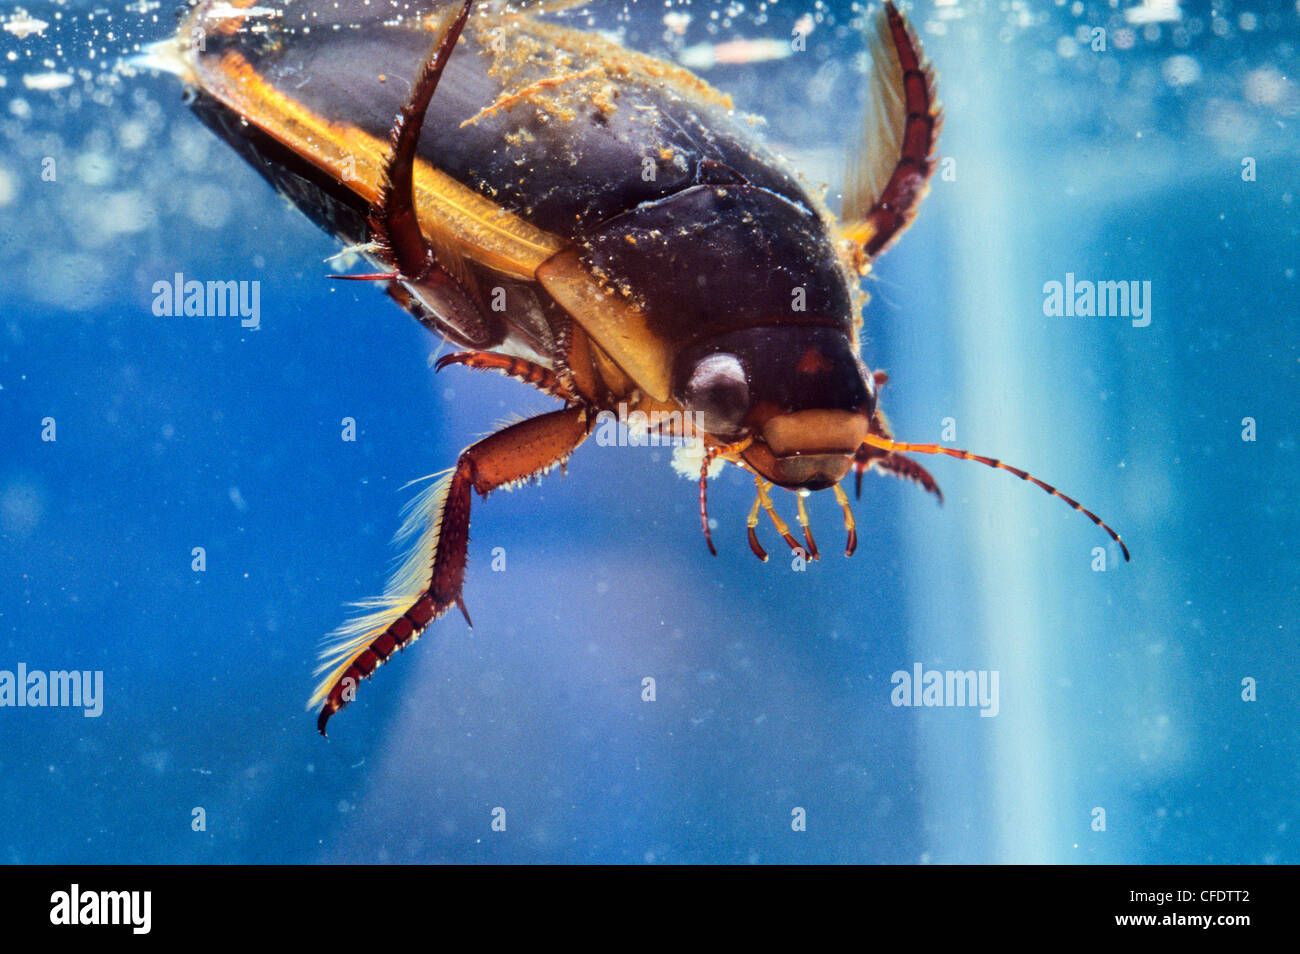 Large Diving Beetle (Dytiscus spp.) Stock Photo